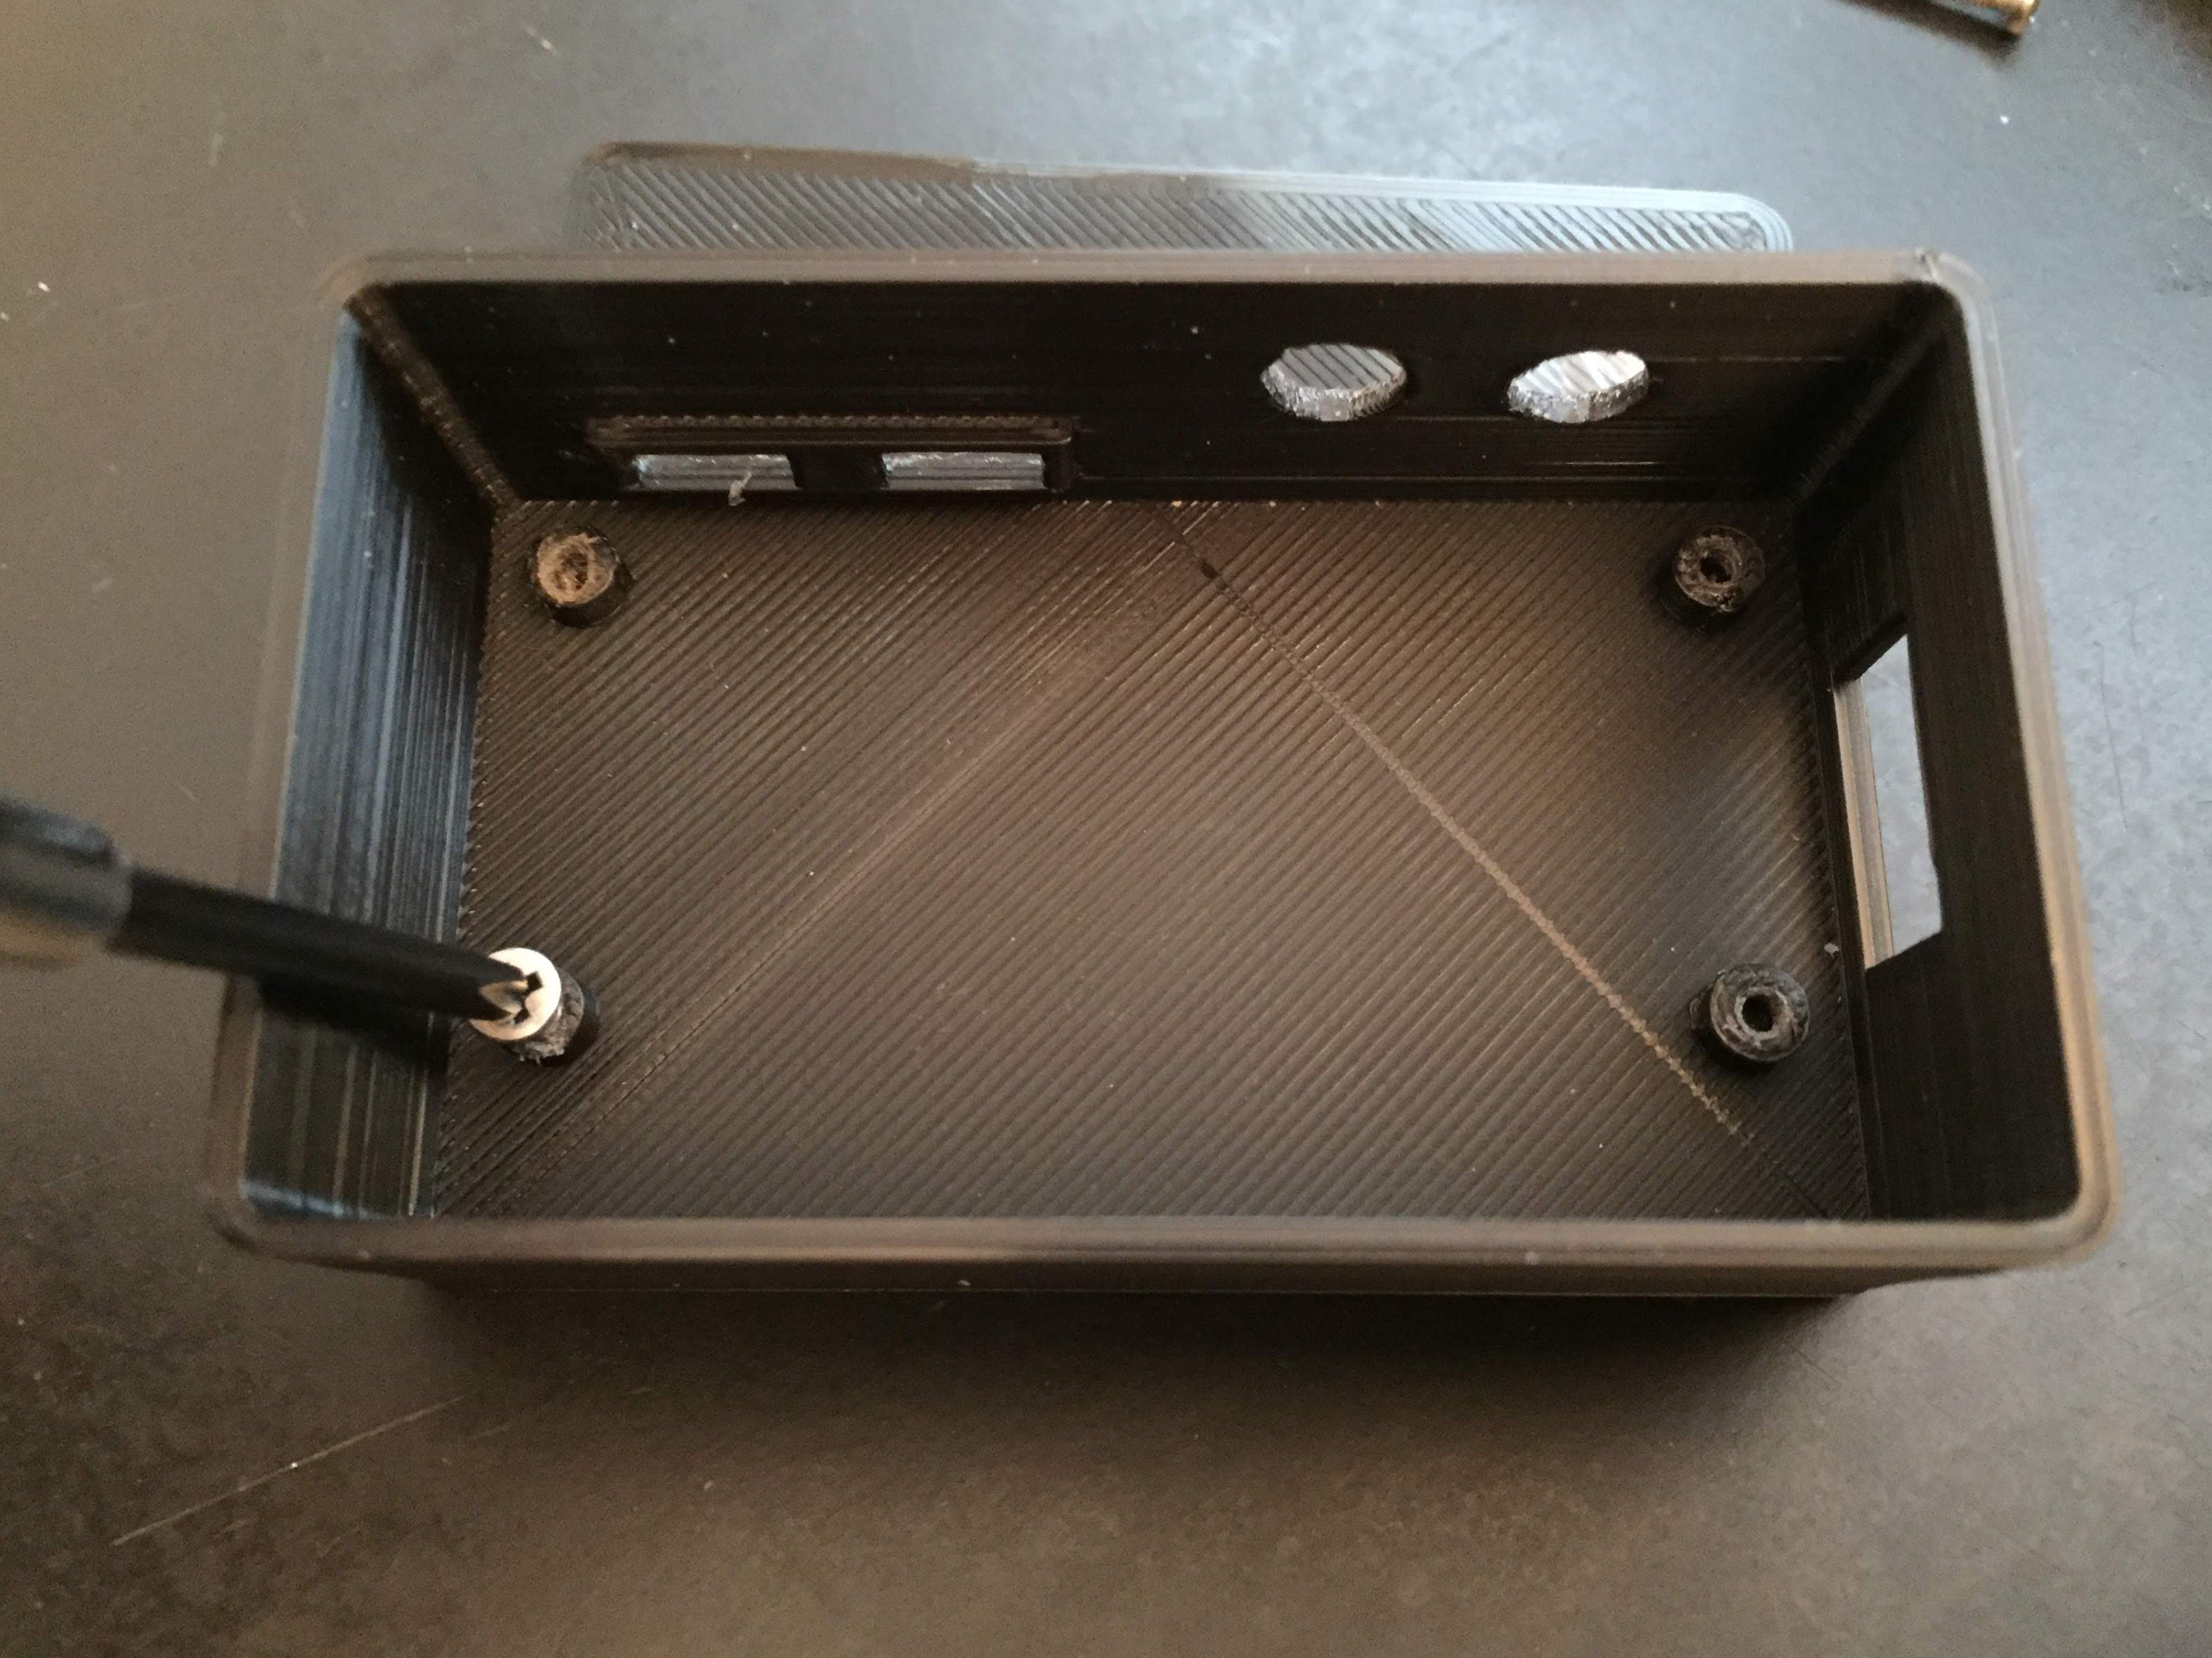 Case Assembly: Thread Mounts First